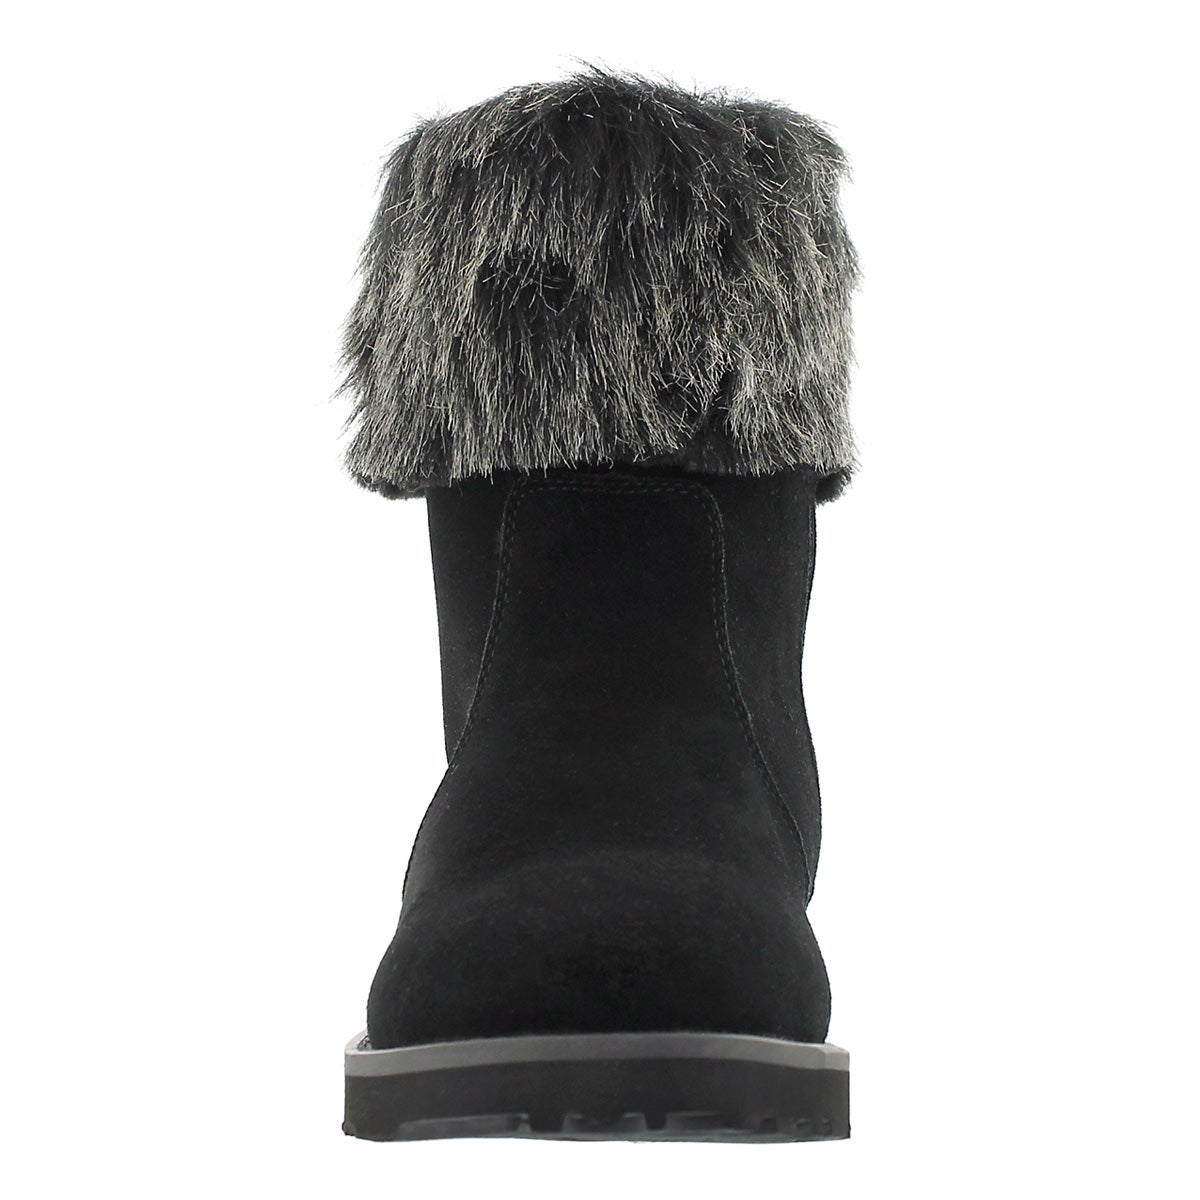 Lds Smocs 5 Fur black suede boot